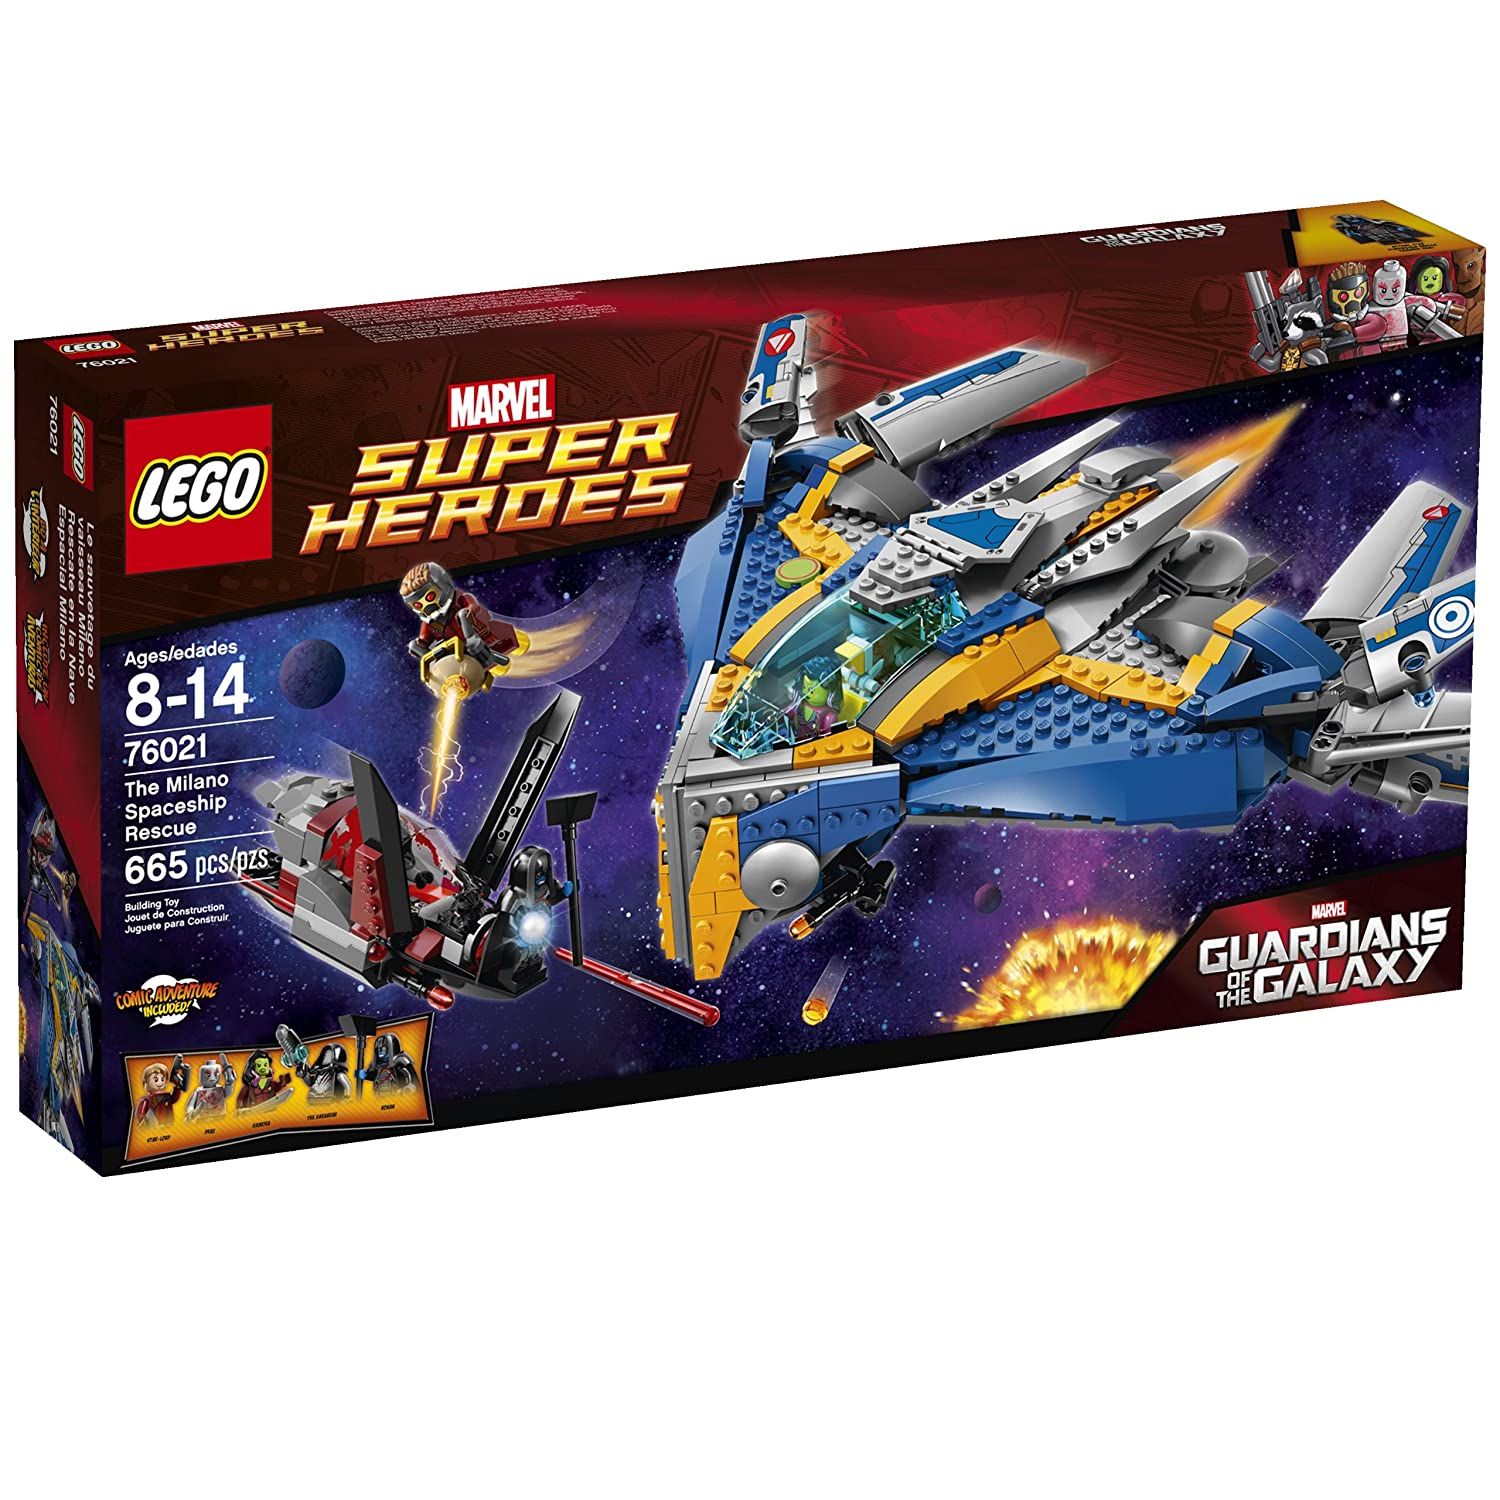 Lego Sets on Amazon